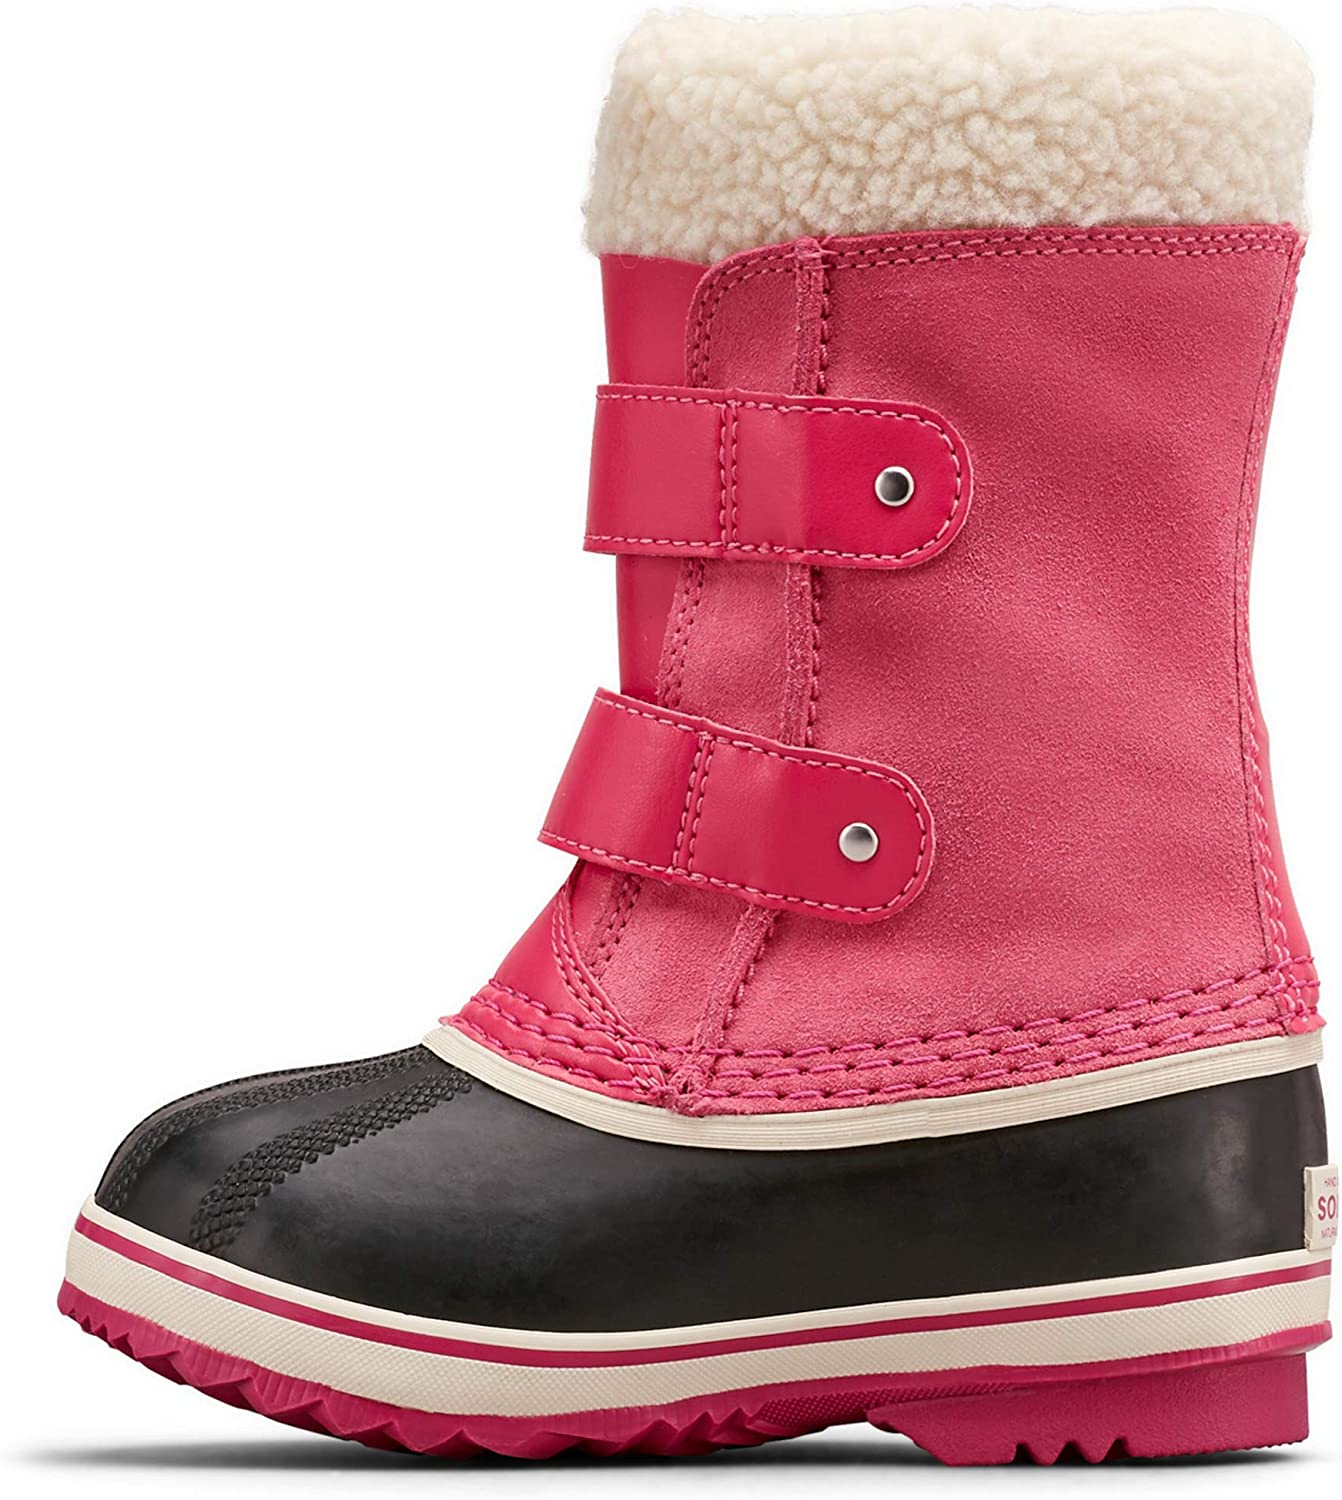 Sorel Kids Girl's 1964 Pac Strap (Toddler/Little Kid)